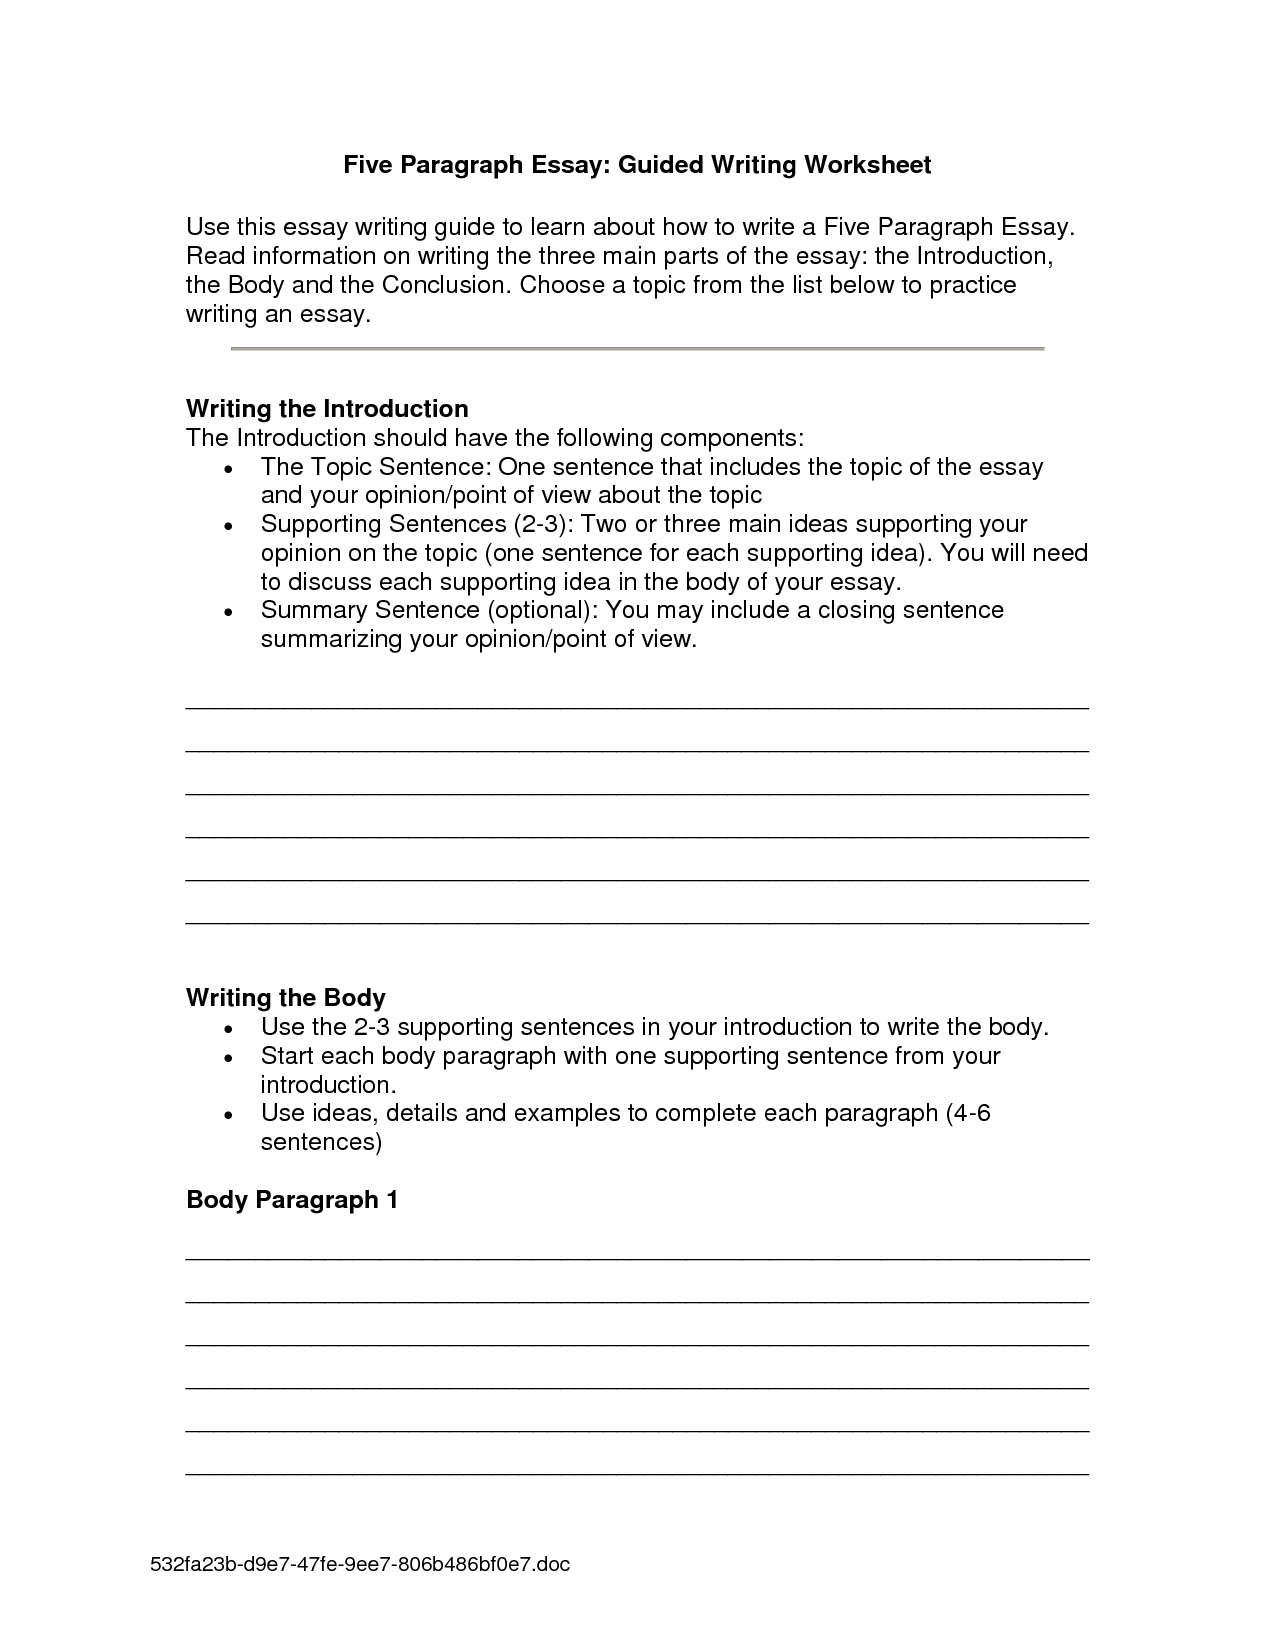 cc essay help - ap world history - google sites  writing a five paragraph essay worksheet